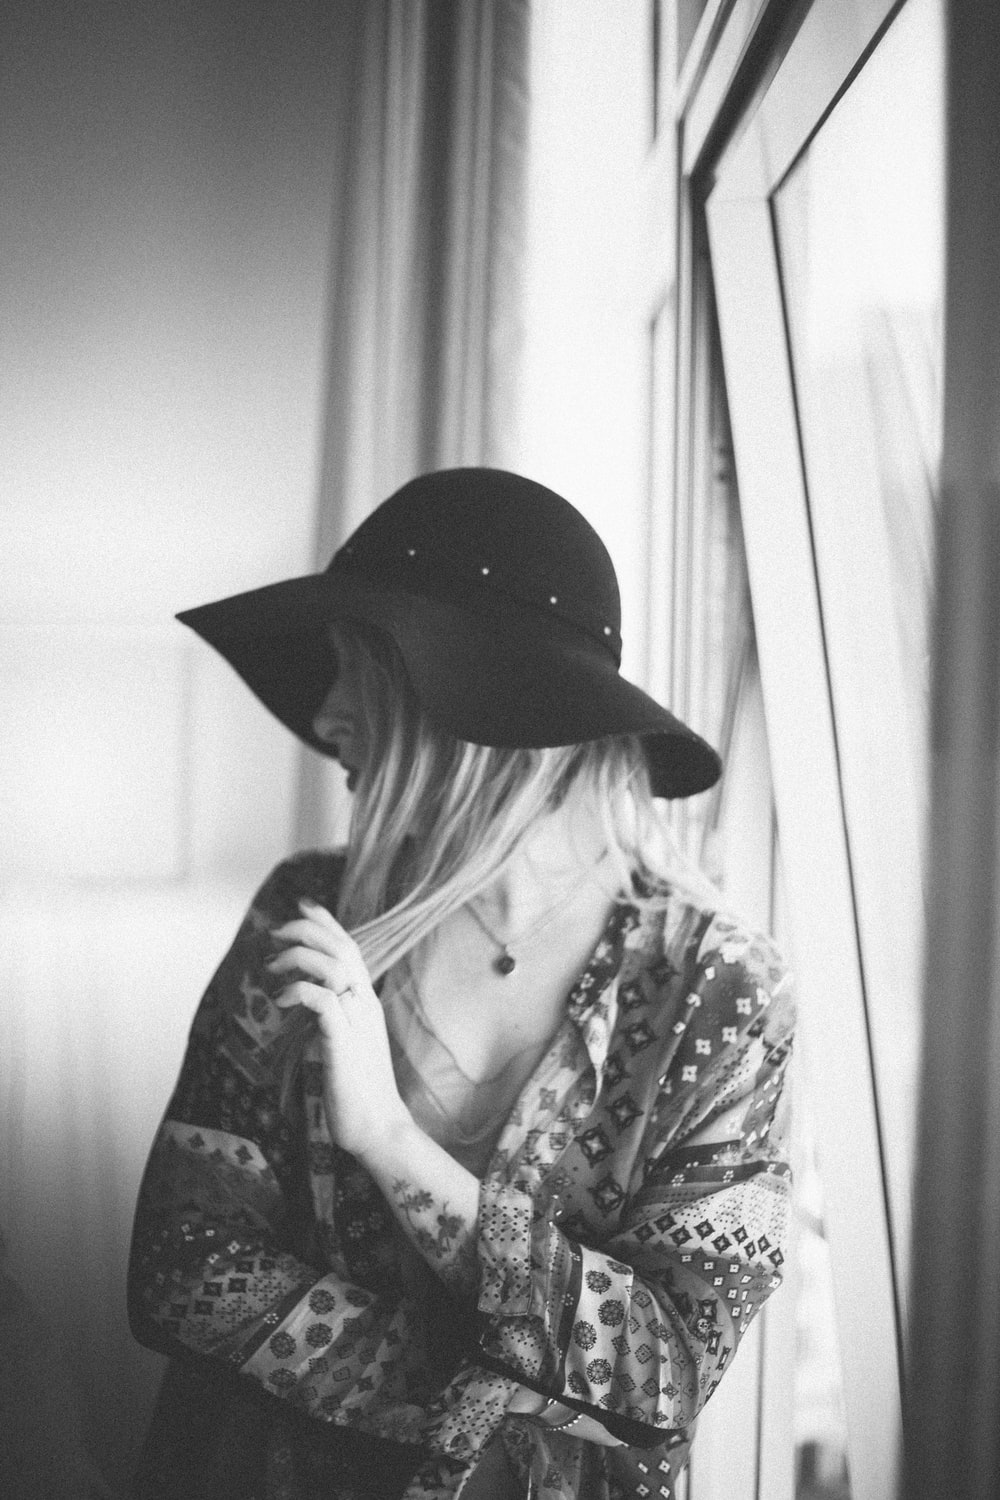 woman in black hat and white and black floral long sleeve shirt